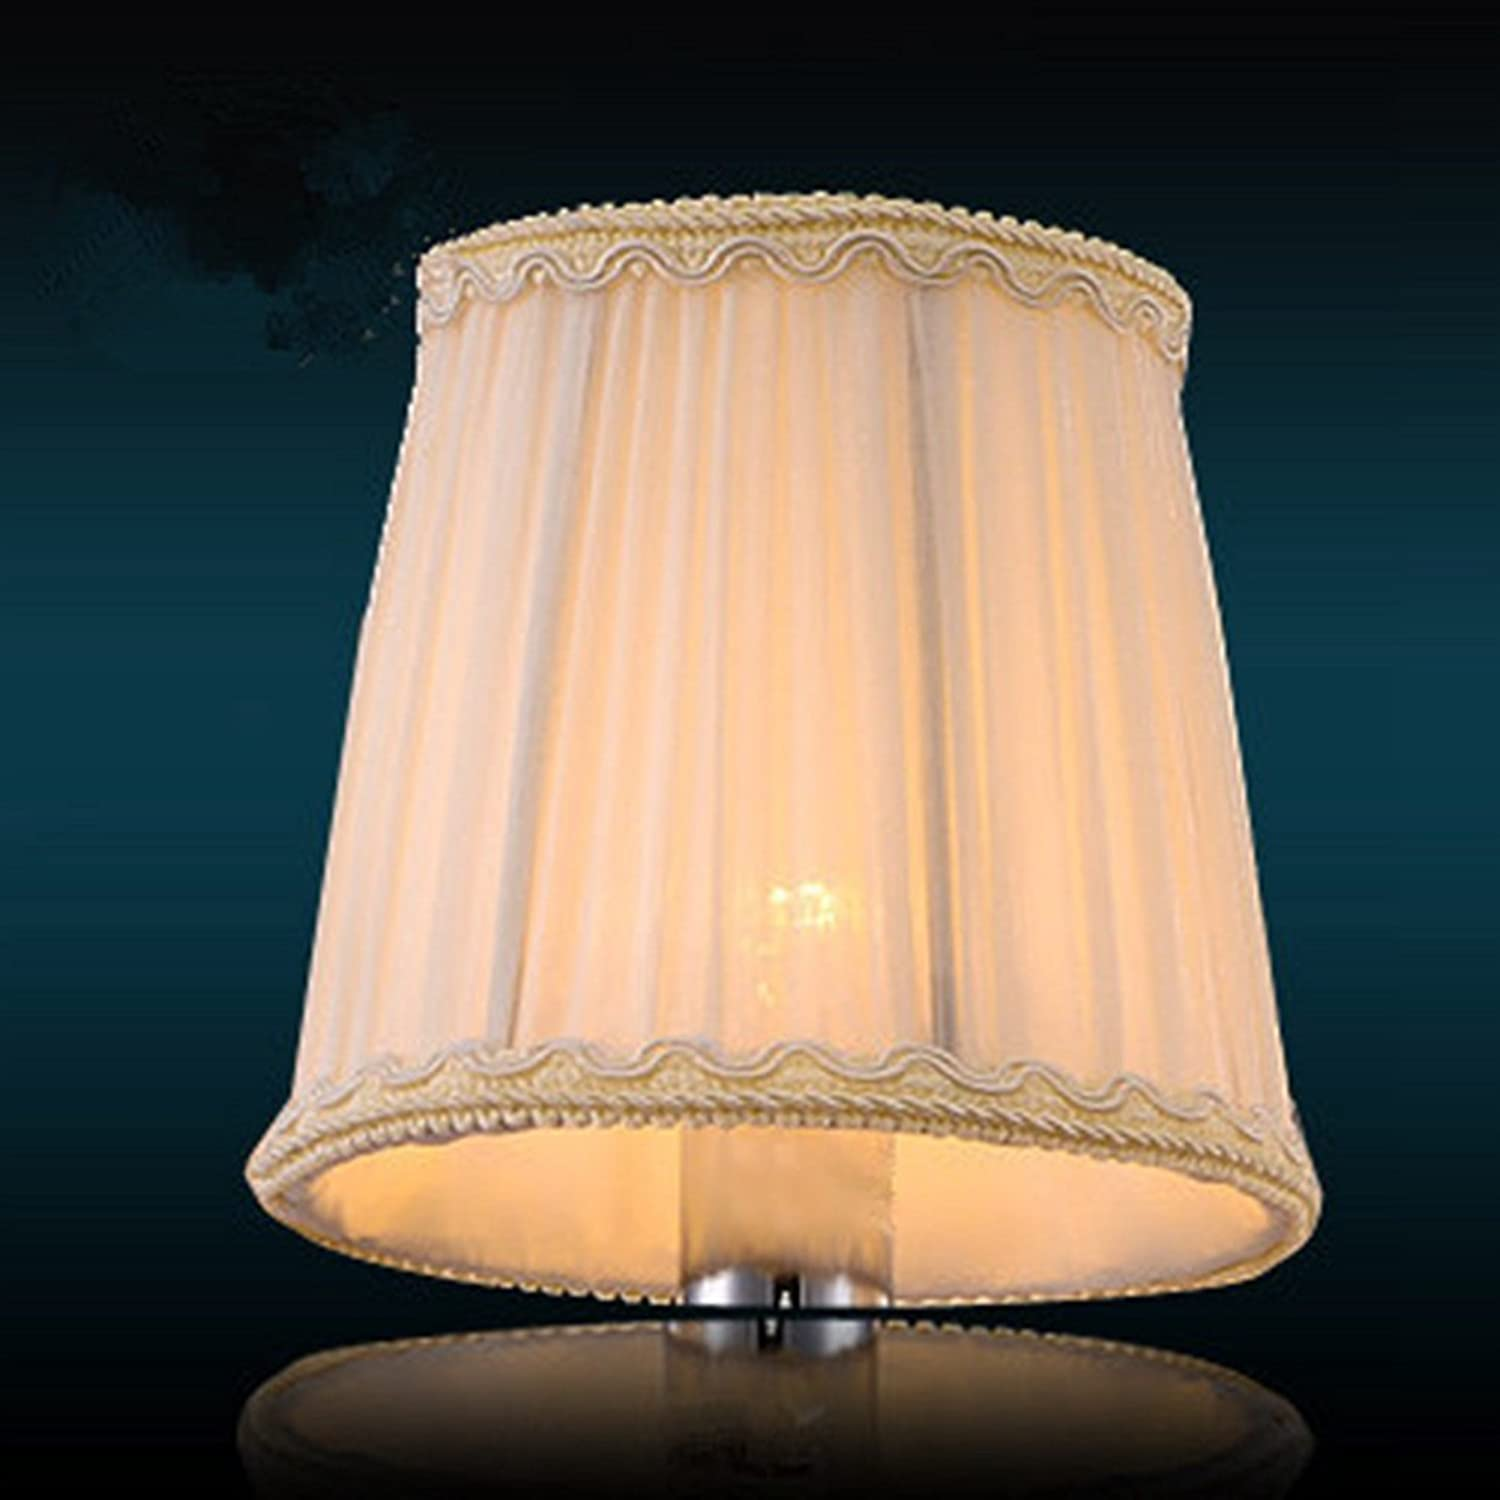 Lampshade High-Grade Crystal Chandelier Dedicated Lampshade (Fit for E14 Tip Bulb) (Size 8  13.5  12.5cm(3.15  5.31  4.92 inch), Model  M32)